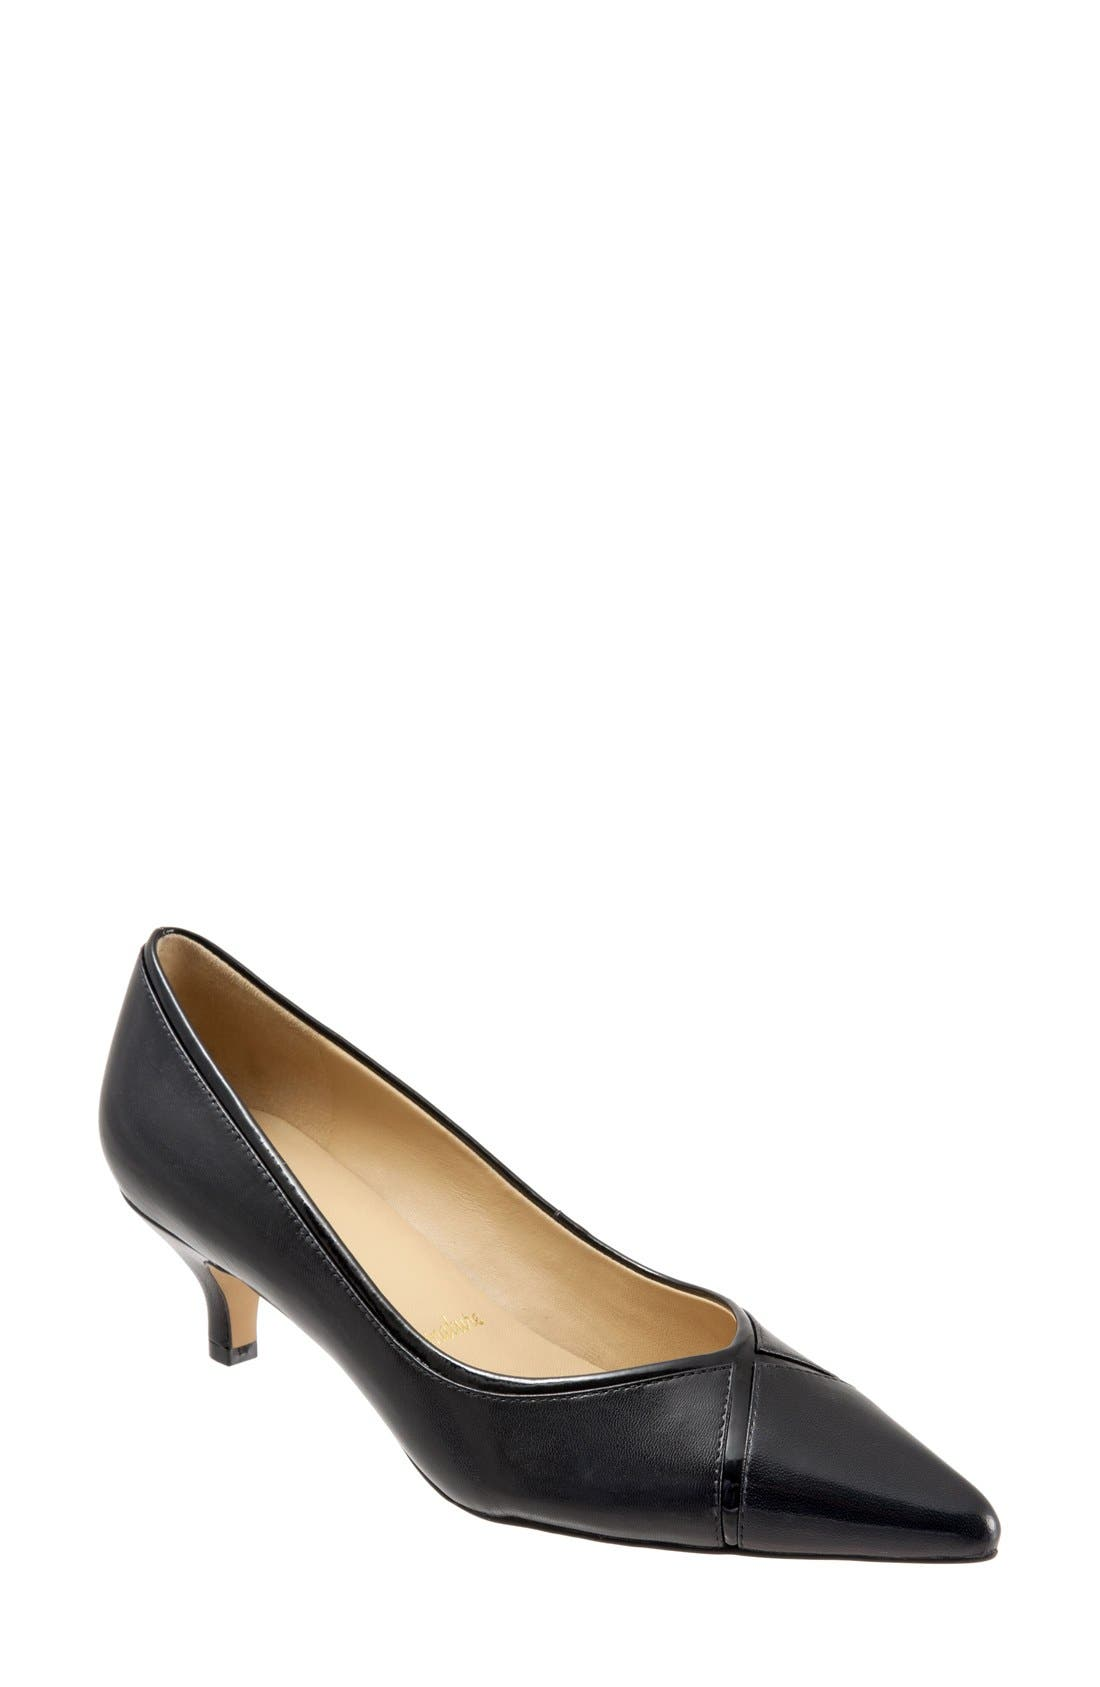 'Kelsey' Pointy Toe Pump,                             Main thumbnail 1, color,                             BLACK/ BLACK